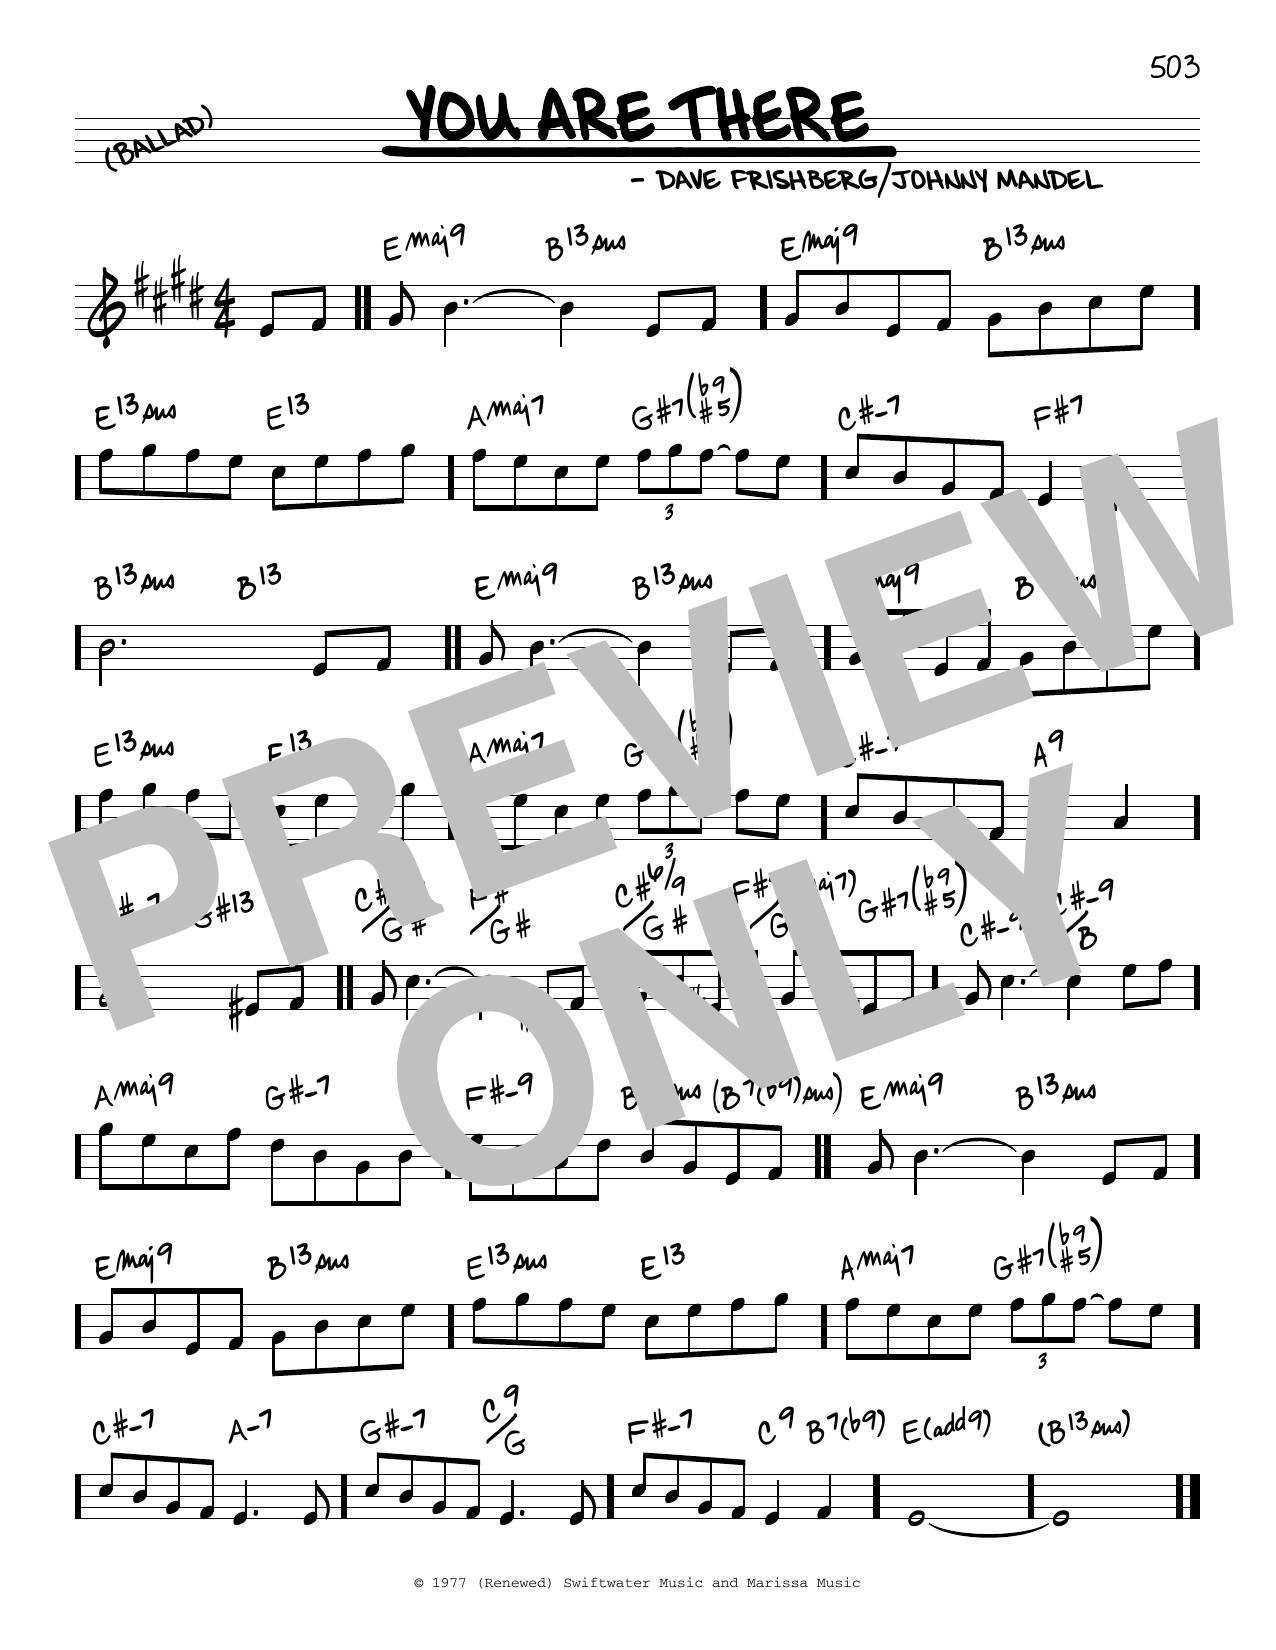 Johnny Mandel and Dave Frishberg You Are There sheet music notes and chords. Download Printable PDF.